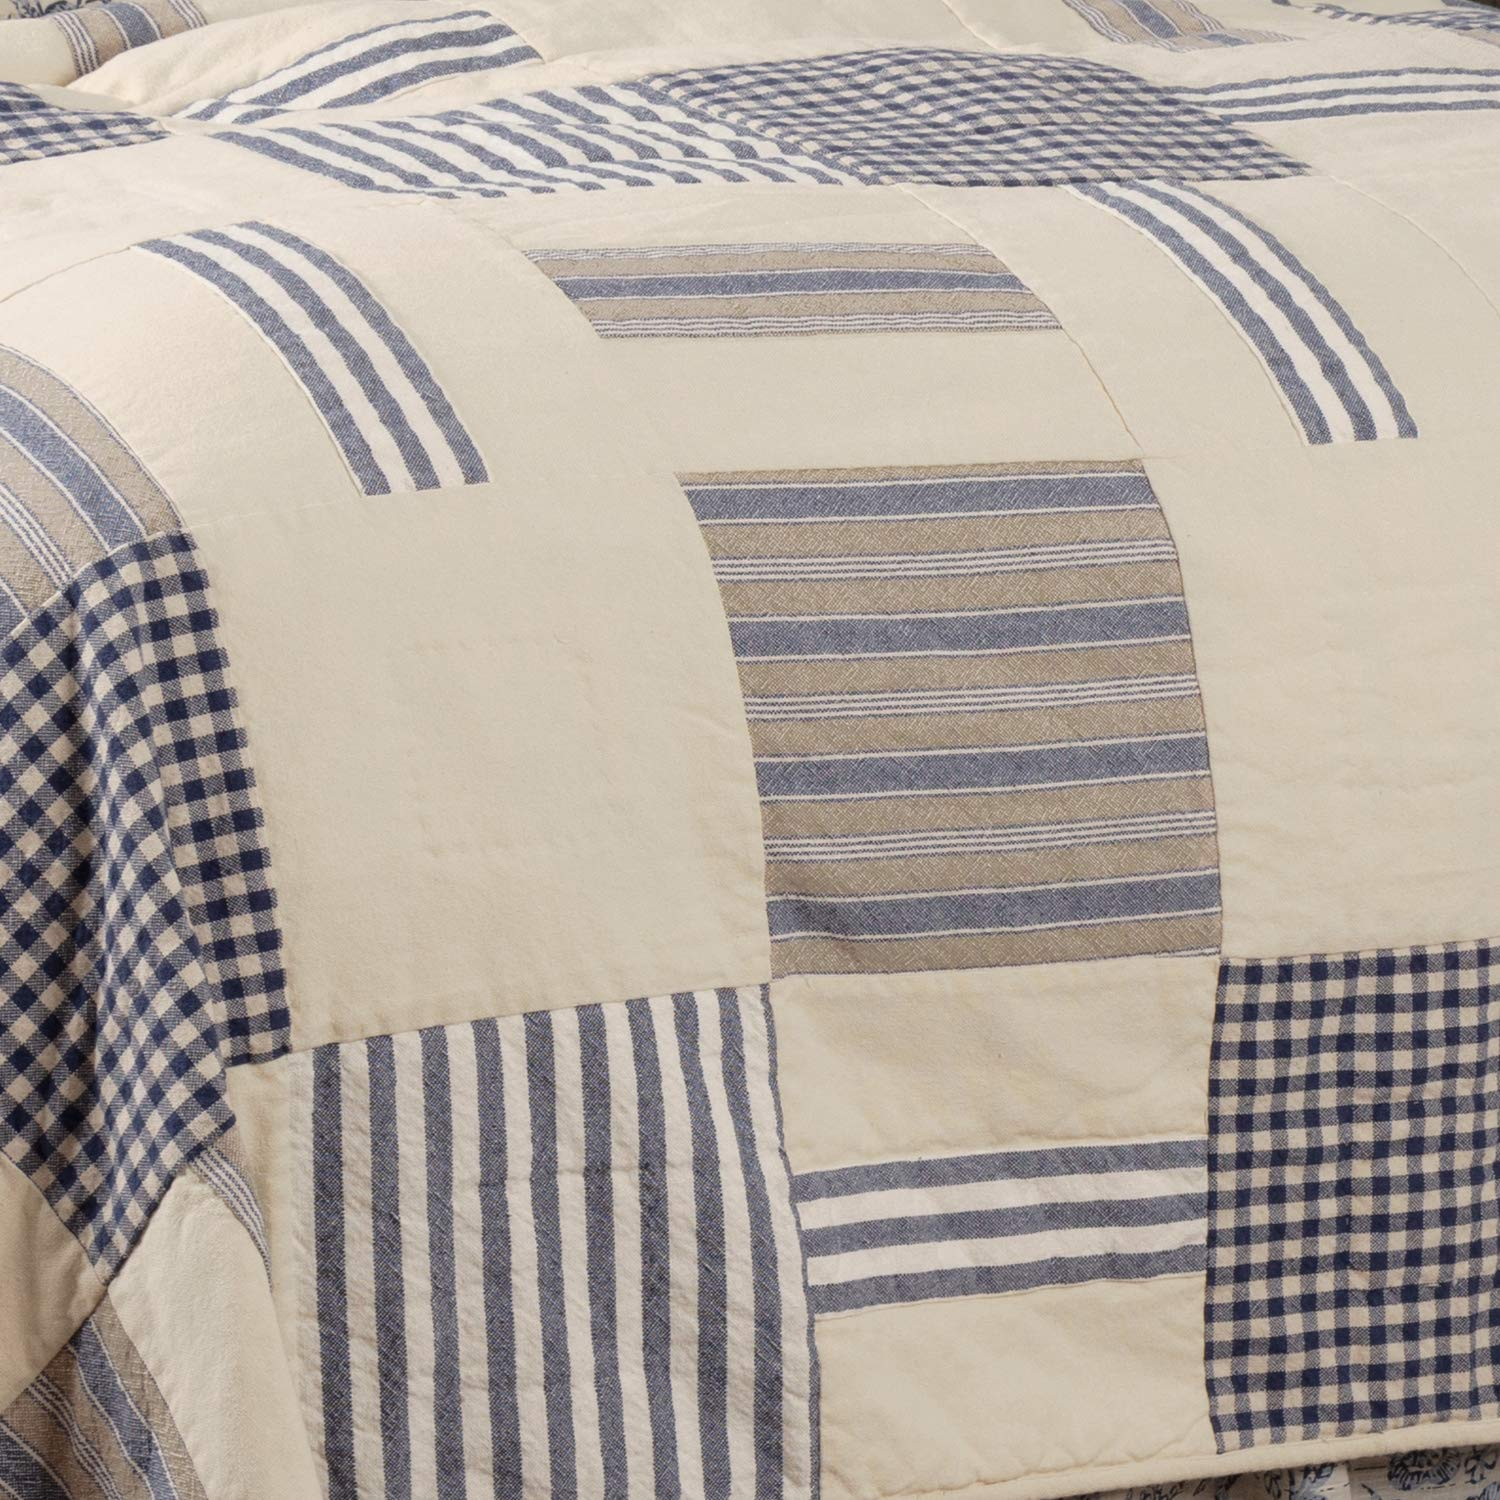 Piper Classics Doylestown Blue Queen Patchwork Quilt, Gingham Checks, Grain Sack & Ticking Stripes, Reversible to Floral Print, Blue & Cream Vintage Farmhouse Bedding, Rustic Country, Cottage Bedroom by Piper Classics (Image #5)